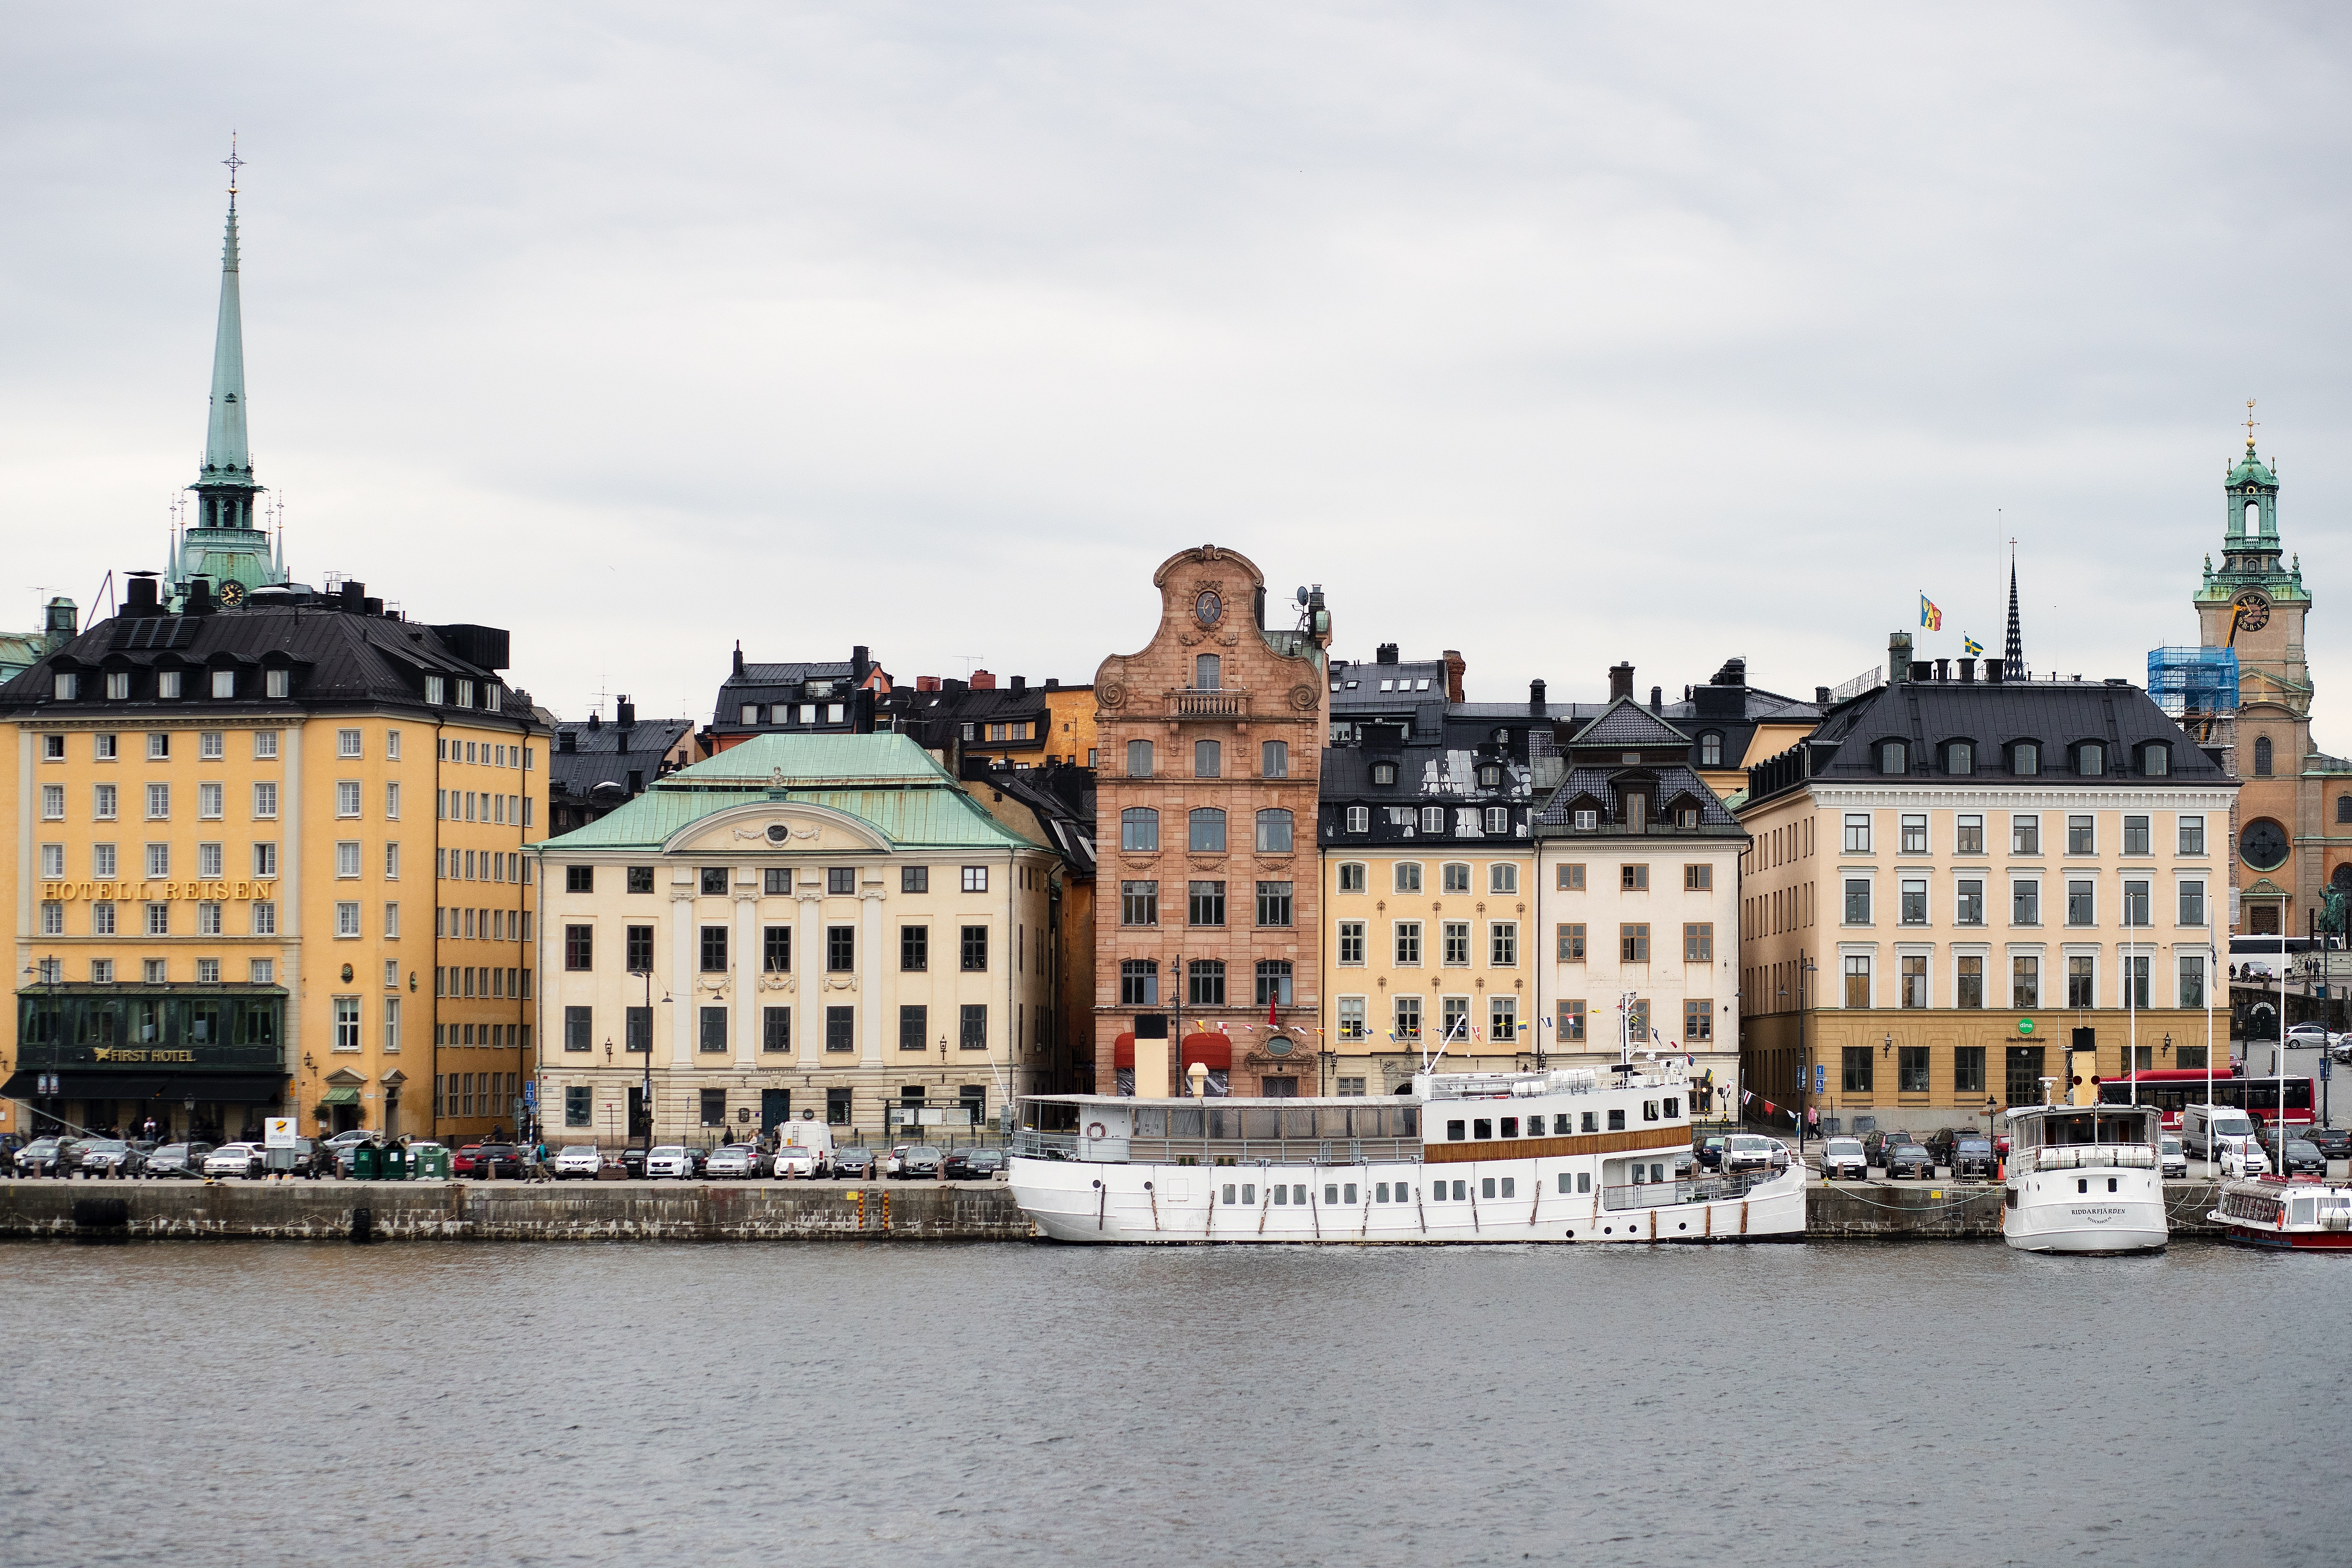 Economic Employer Concept Introduced in Sweden